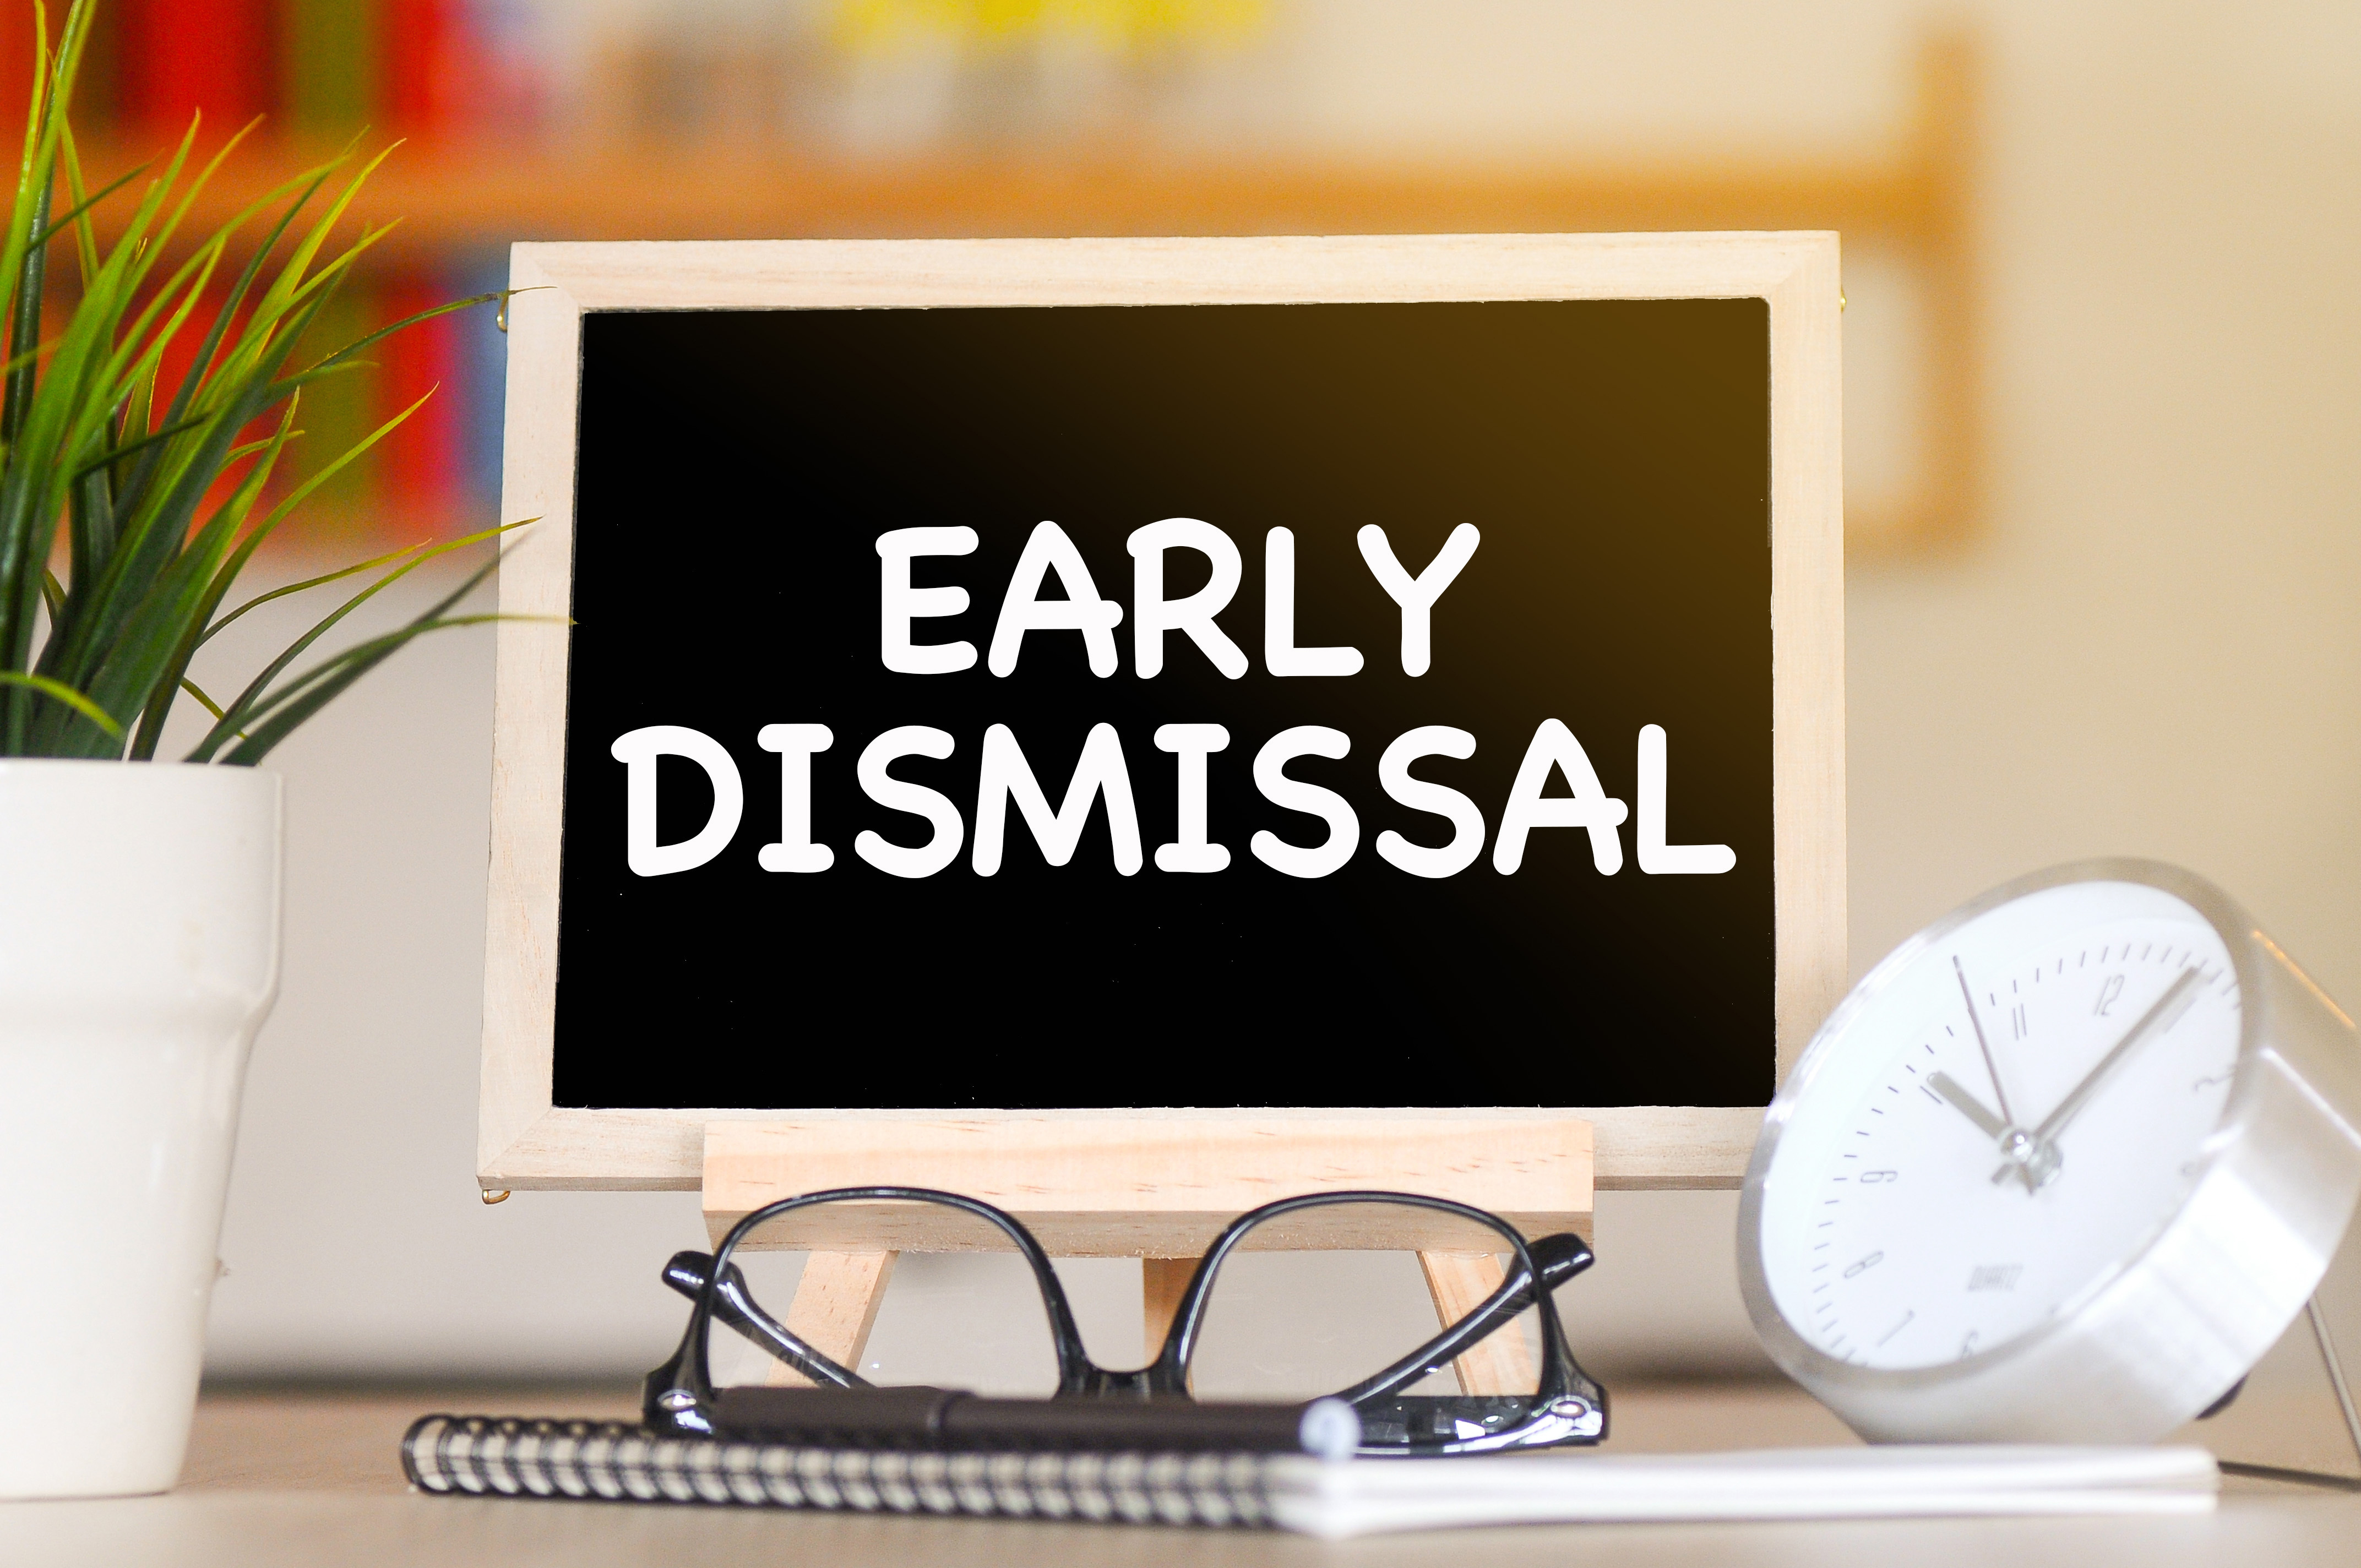 Early Dismissal Drill illustration (file)